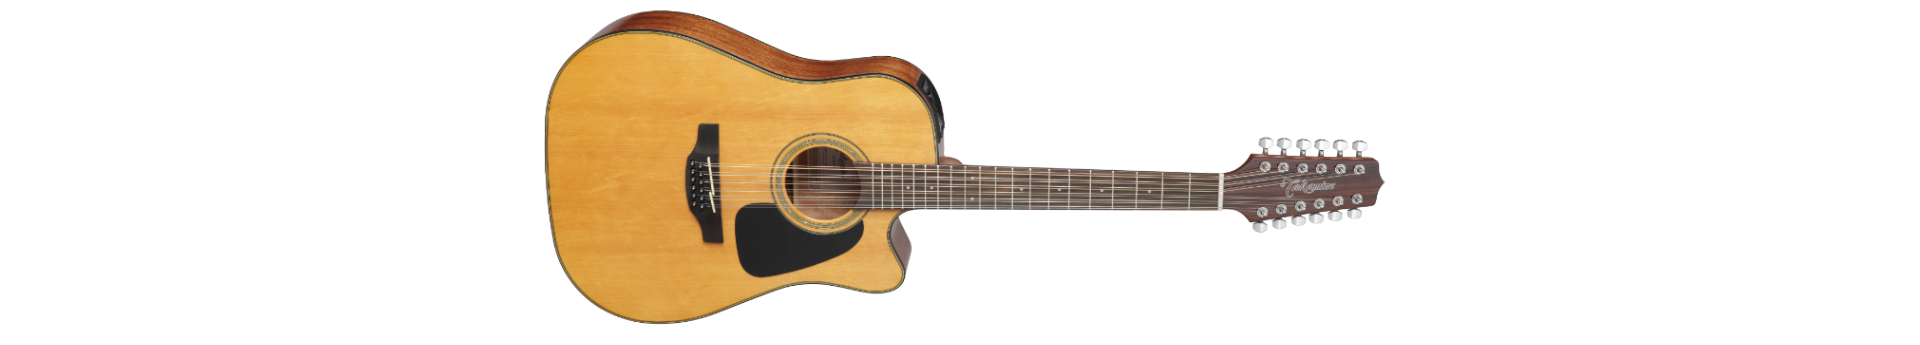 Takamine GD30CE-12NAT 12-String Dreadnought with cutaway